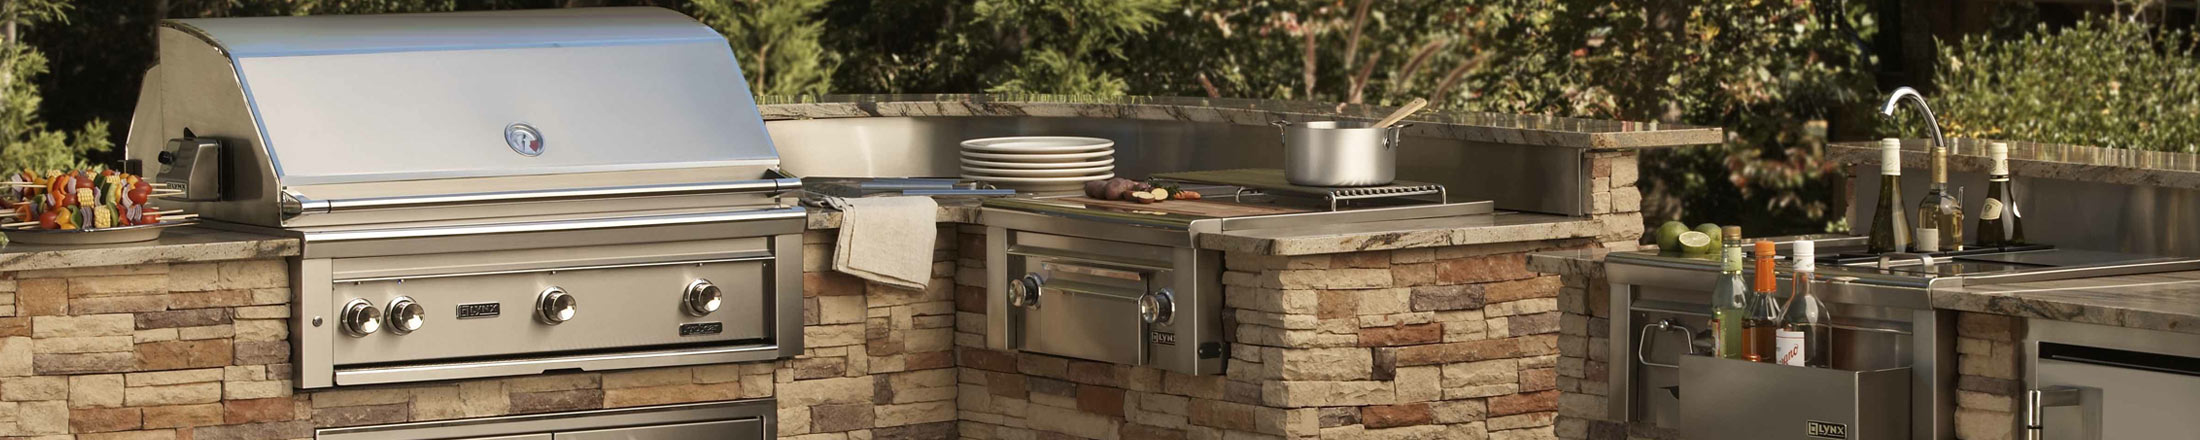 OutdoorKitchens Header 2